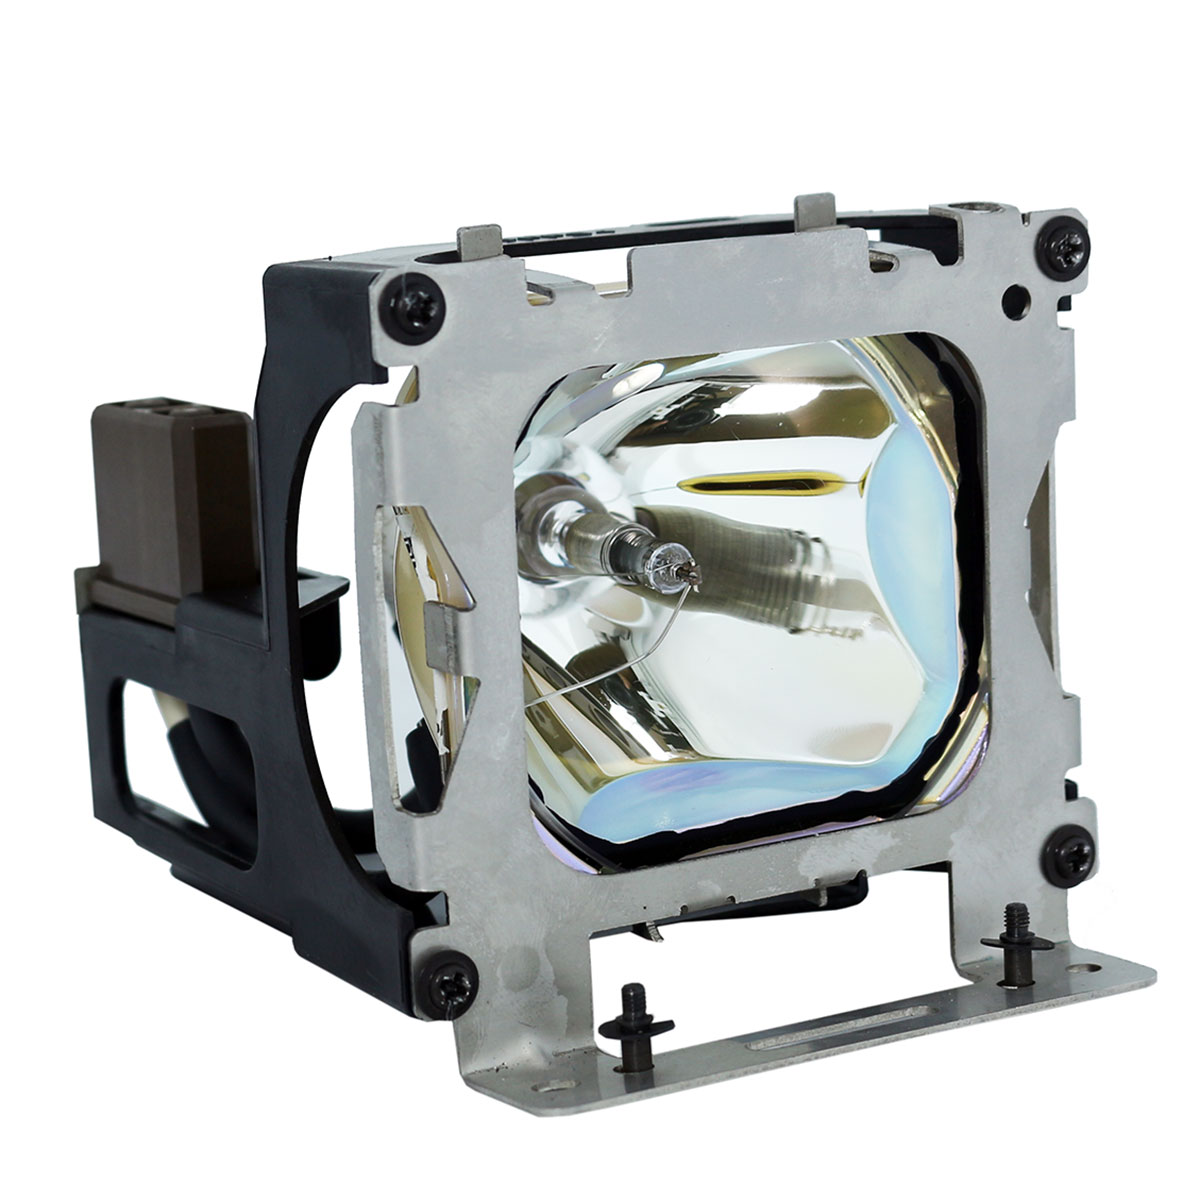 IET Lamps for 3M 78-6969-9946-1 Projector Lamp Replacement Assembly with Genuine Original OEM Ushio NSH Bulb Inside